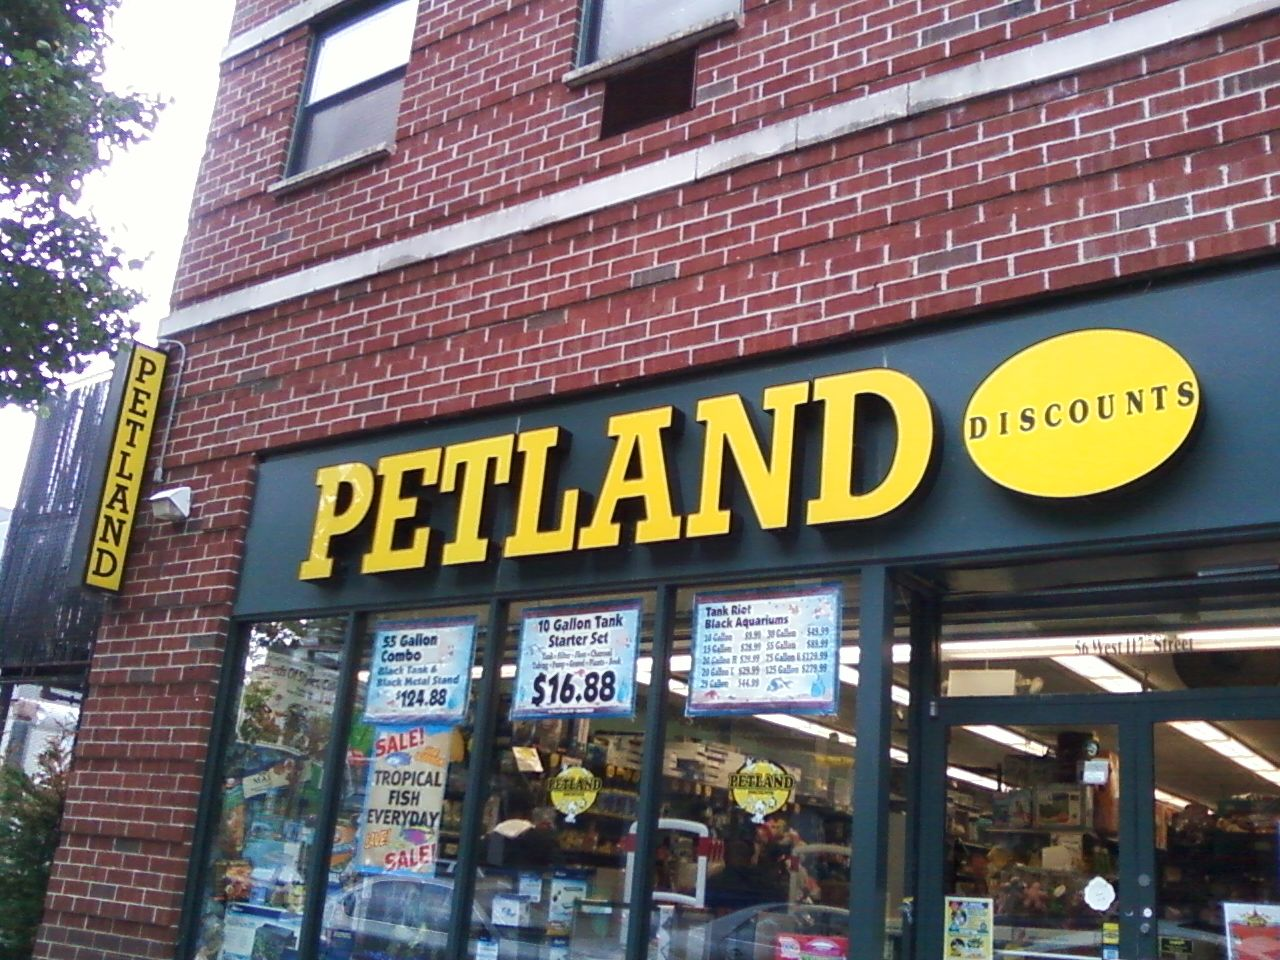 PETLAND animals come from puppy mills. Adopt instead of